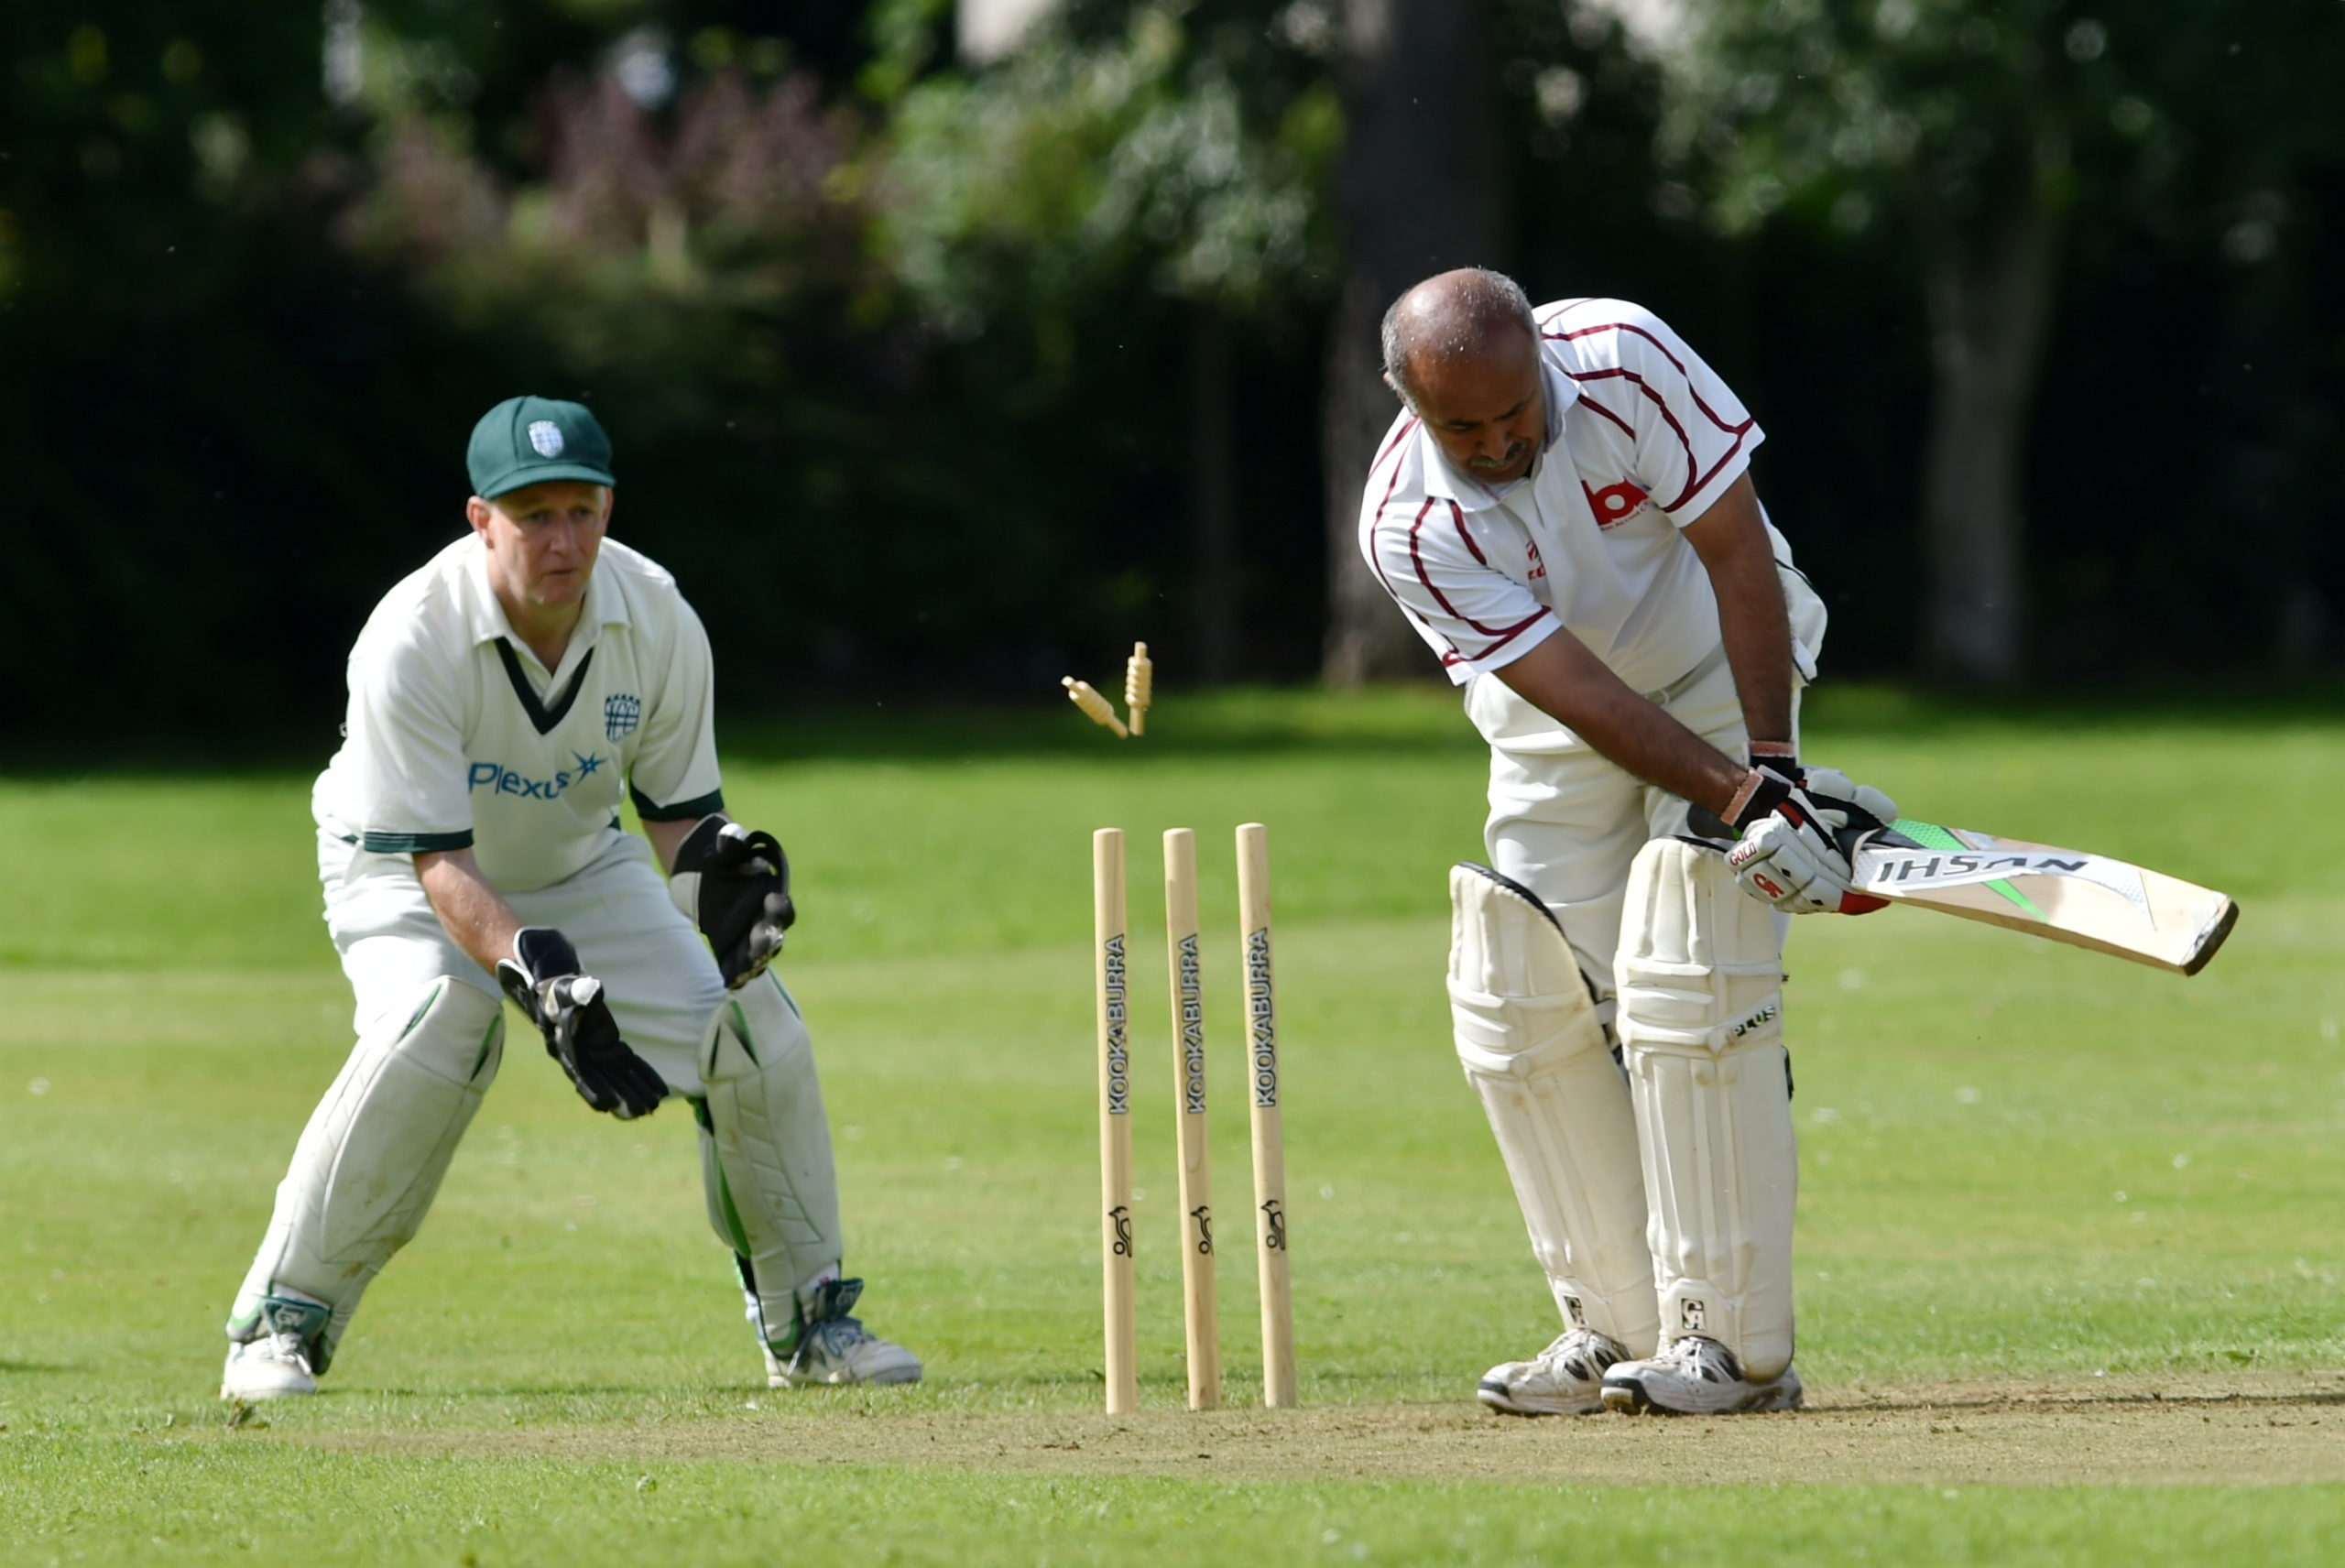 Tauqeer Malik has been bowled out... with the rest of the north-east cricketing community!